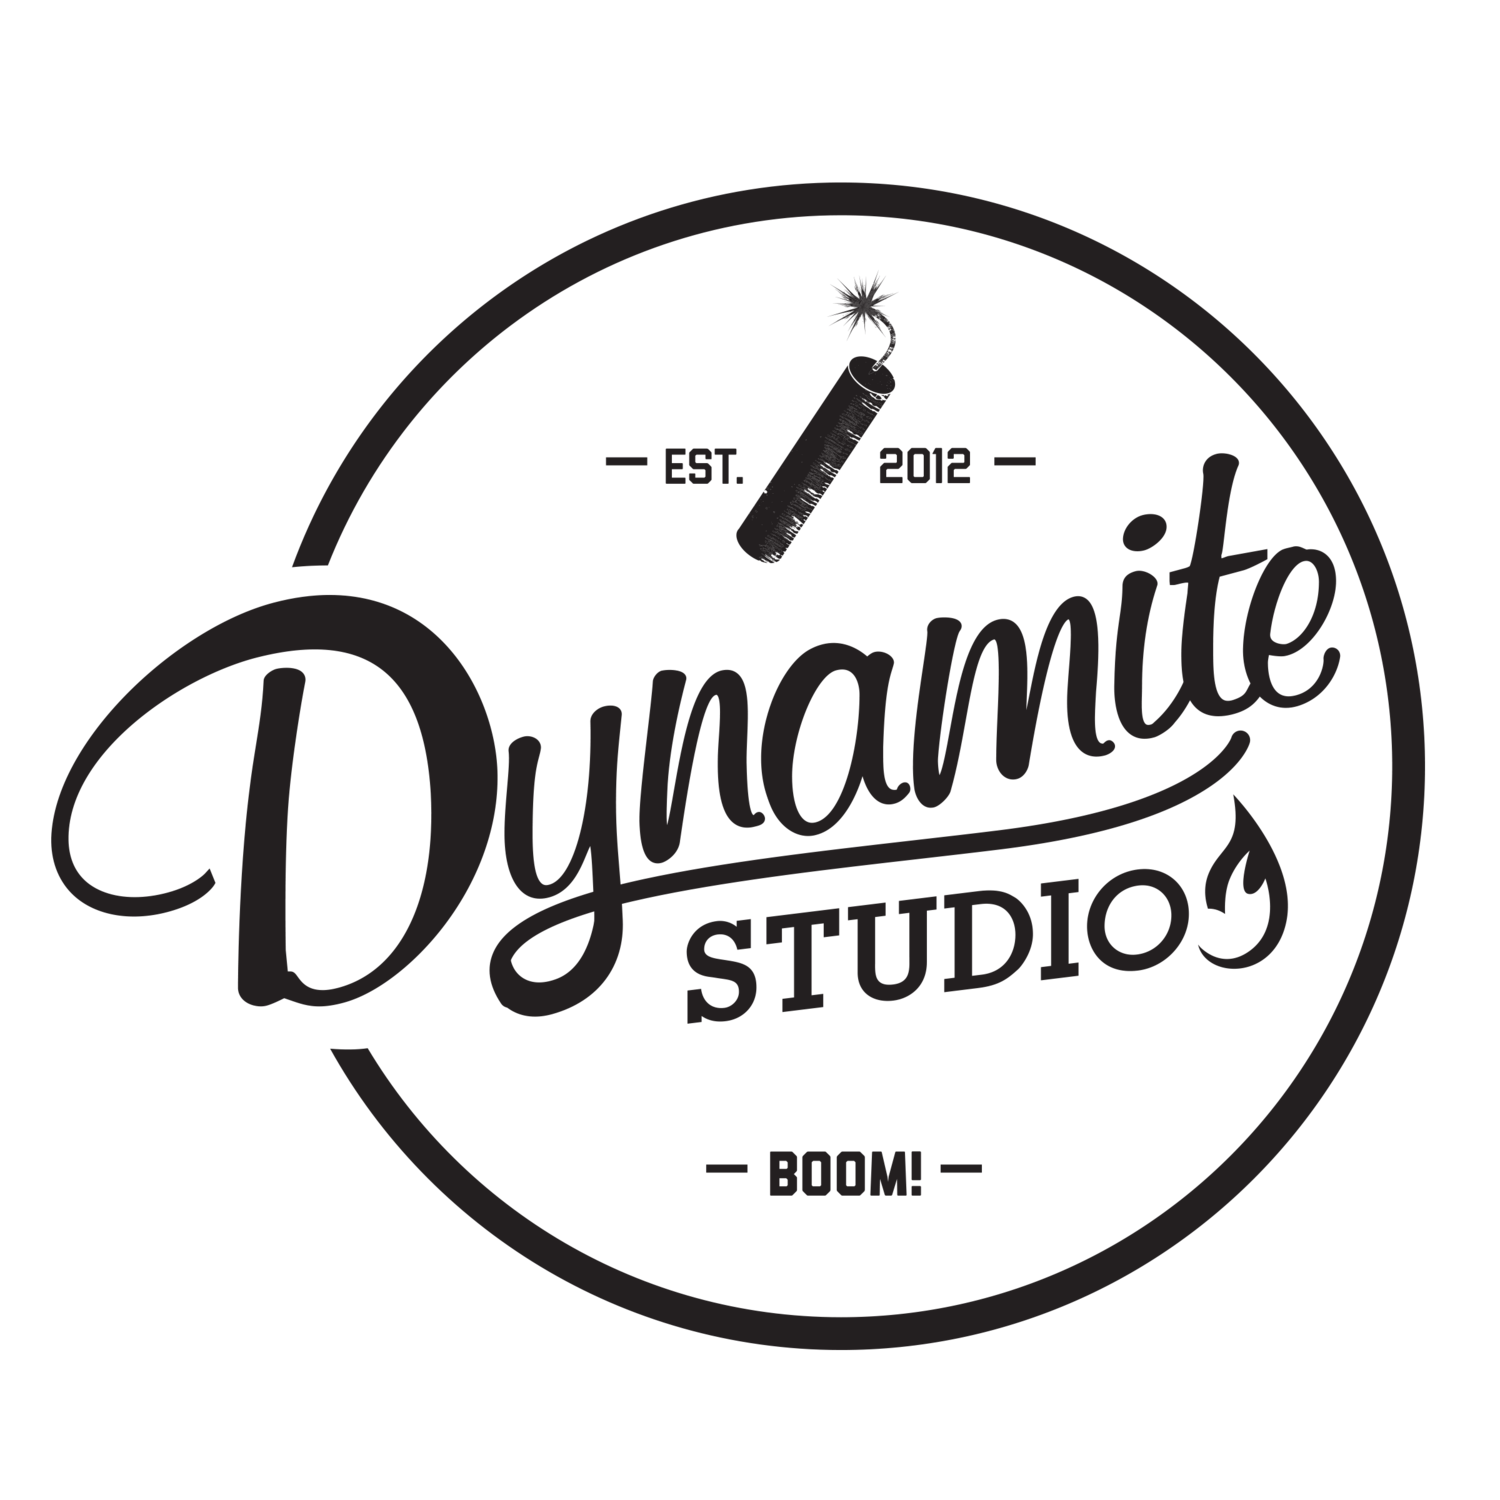 Dynamite Studio Inc - Lifestyle photographers in Orlando, Florida - Orlando Lifestyle Photography